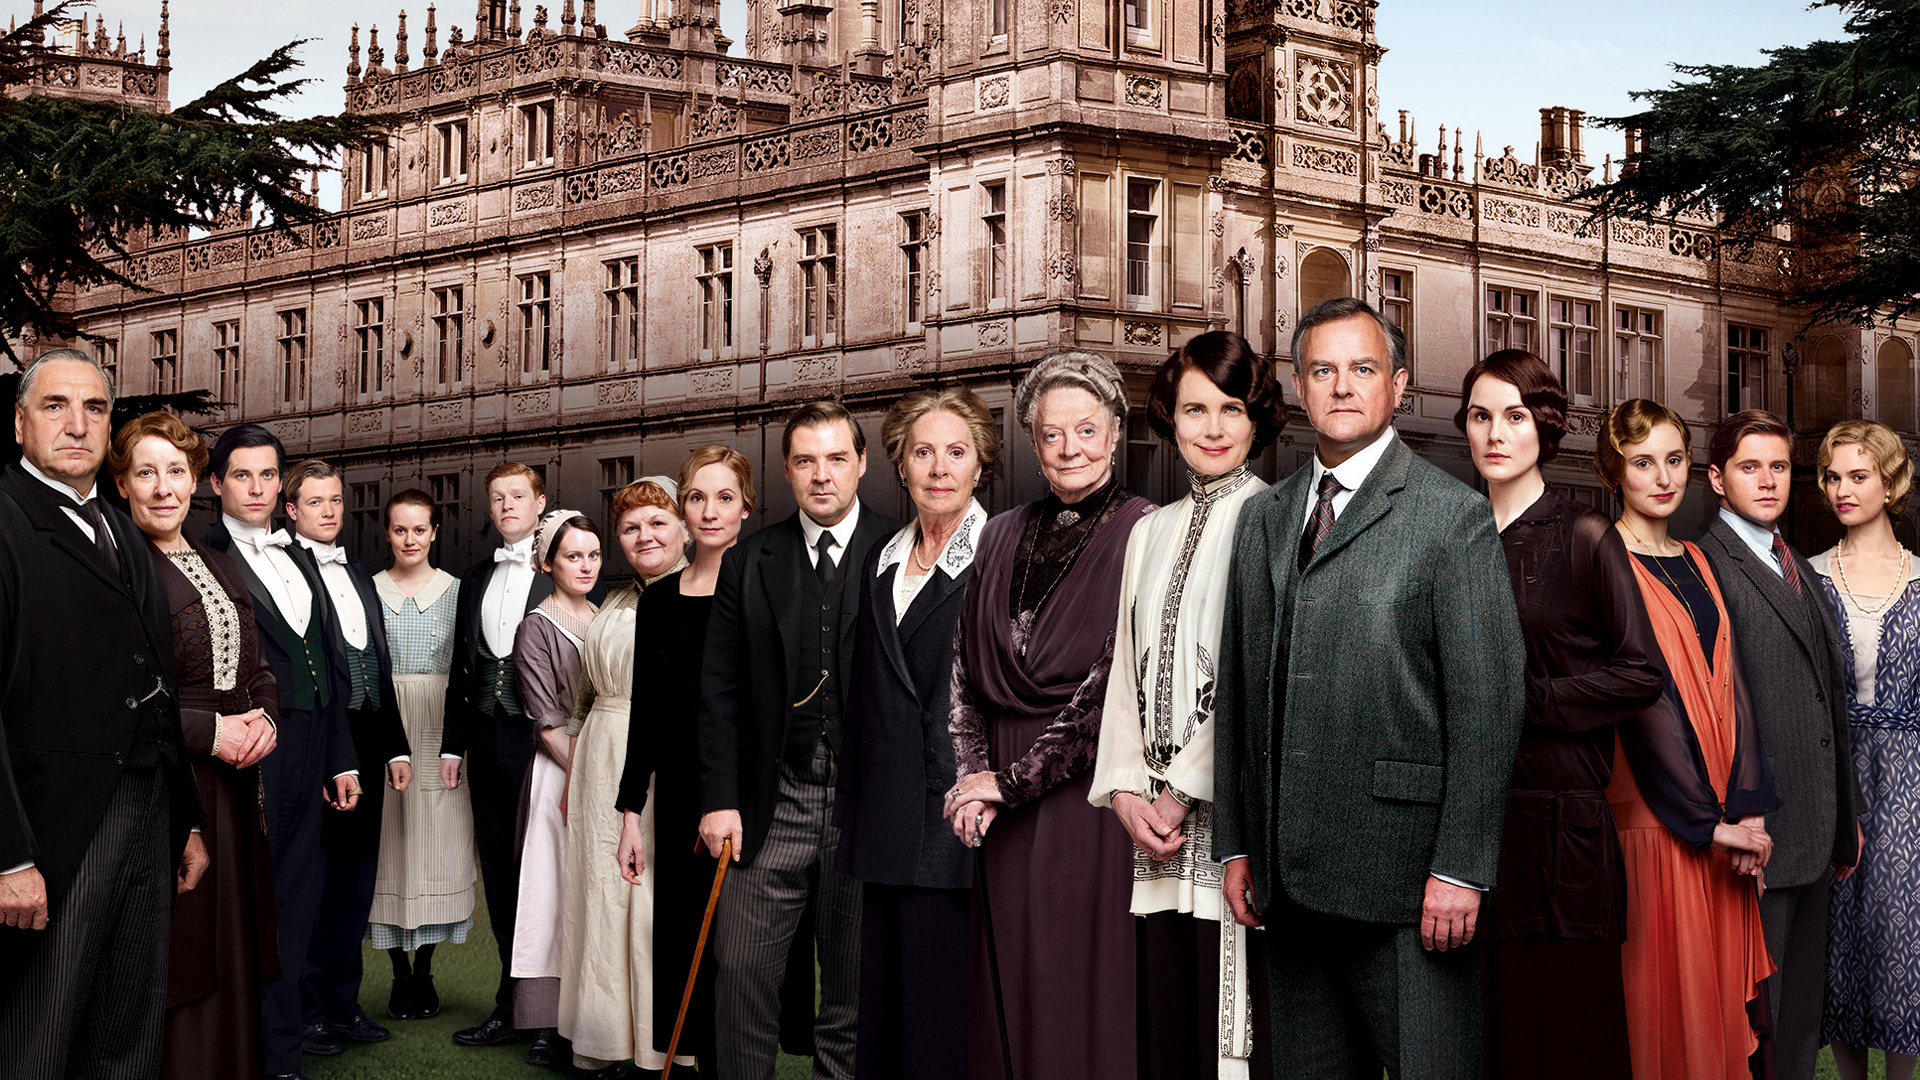 http://d2buyft38glmwk.cloudfront.net/media/images/canonical/mast-downton-s4-series-icon-hires.jpg